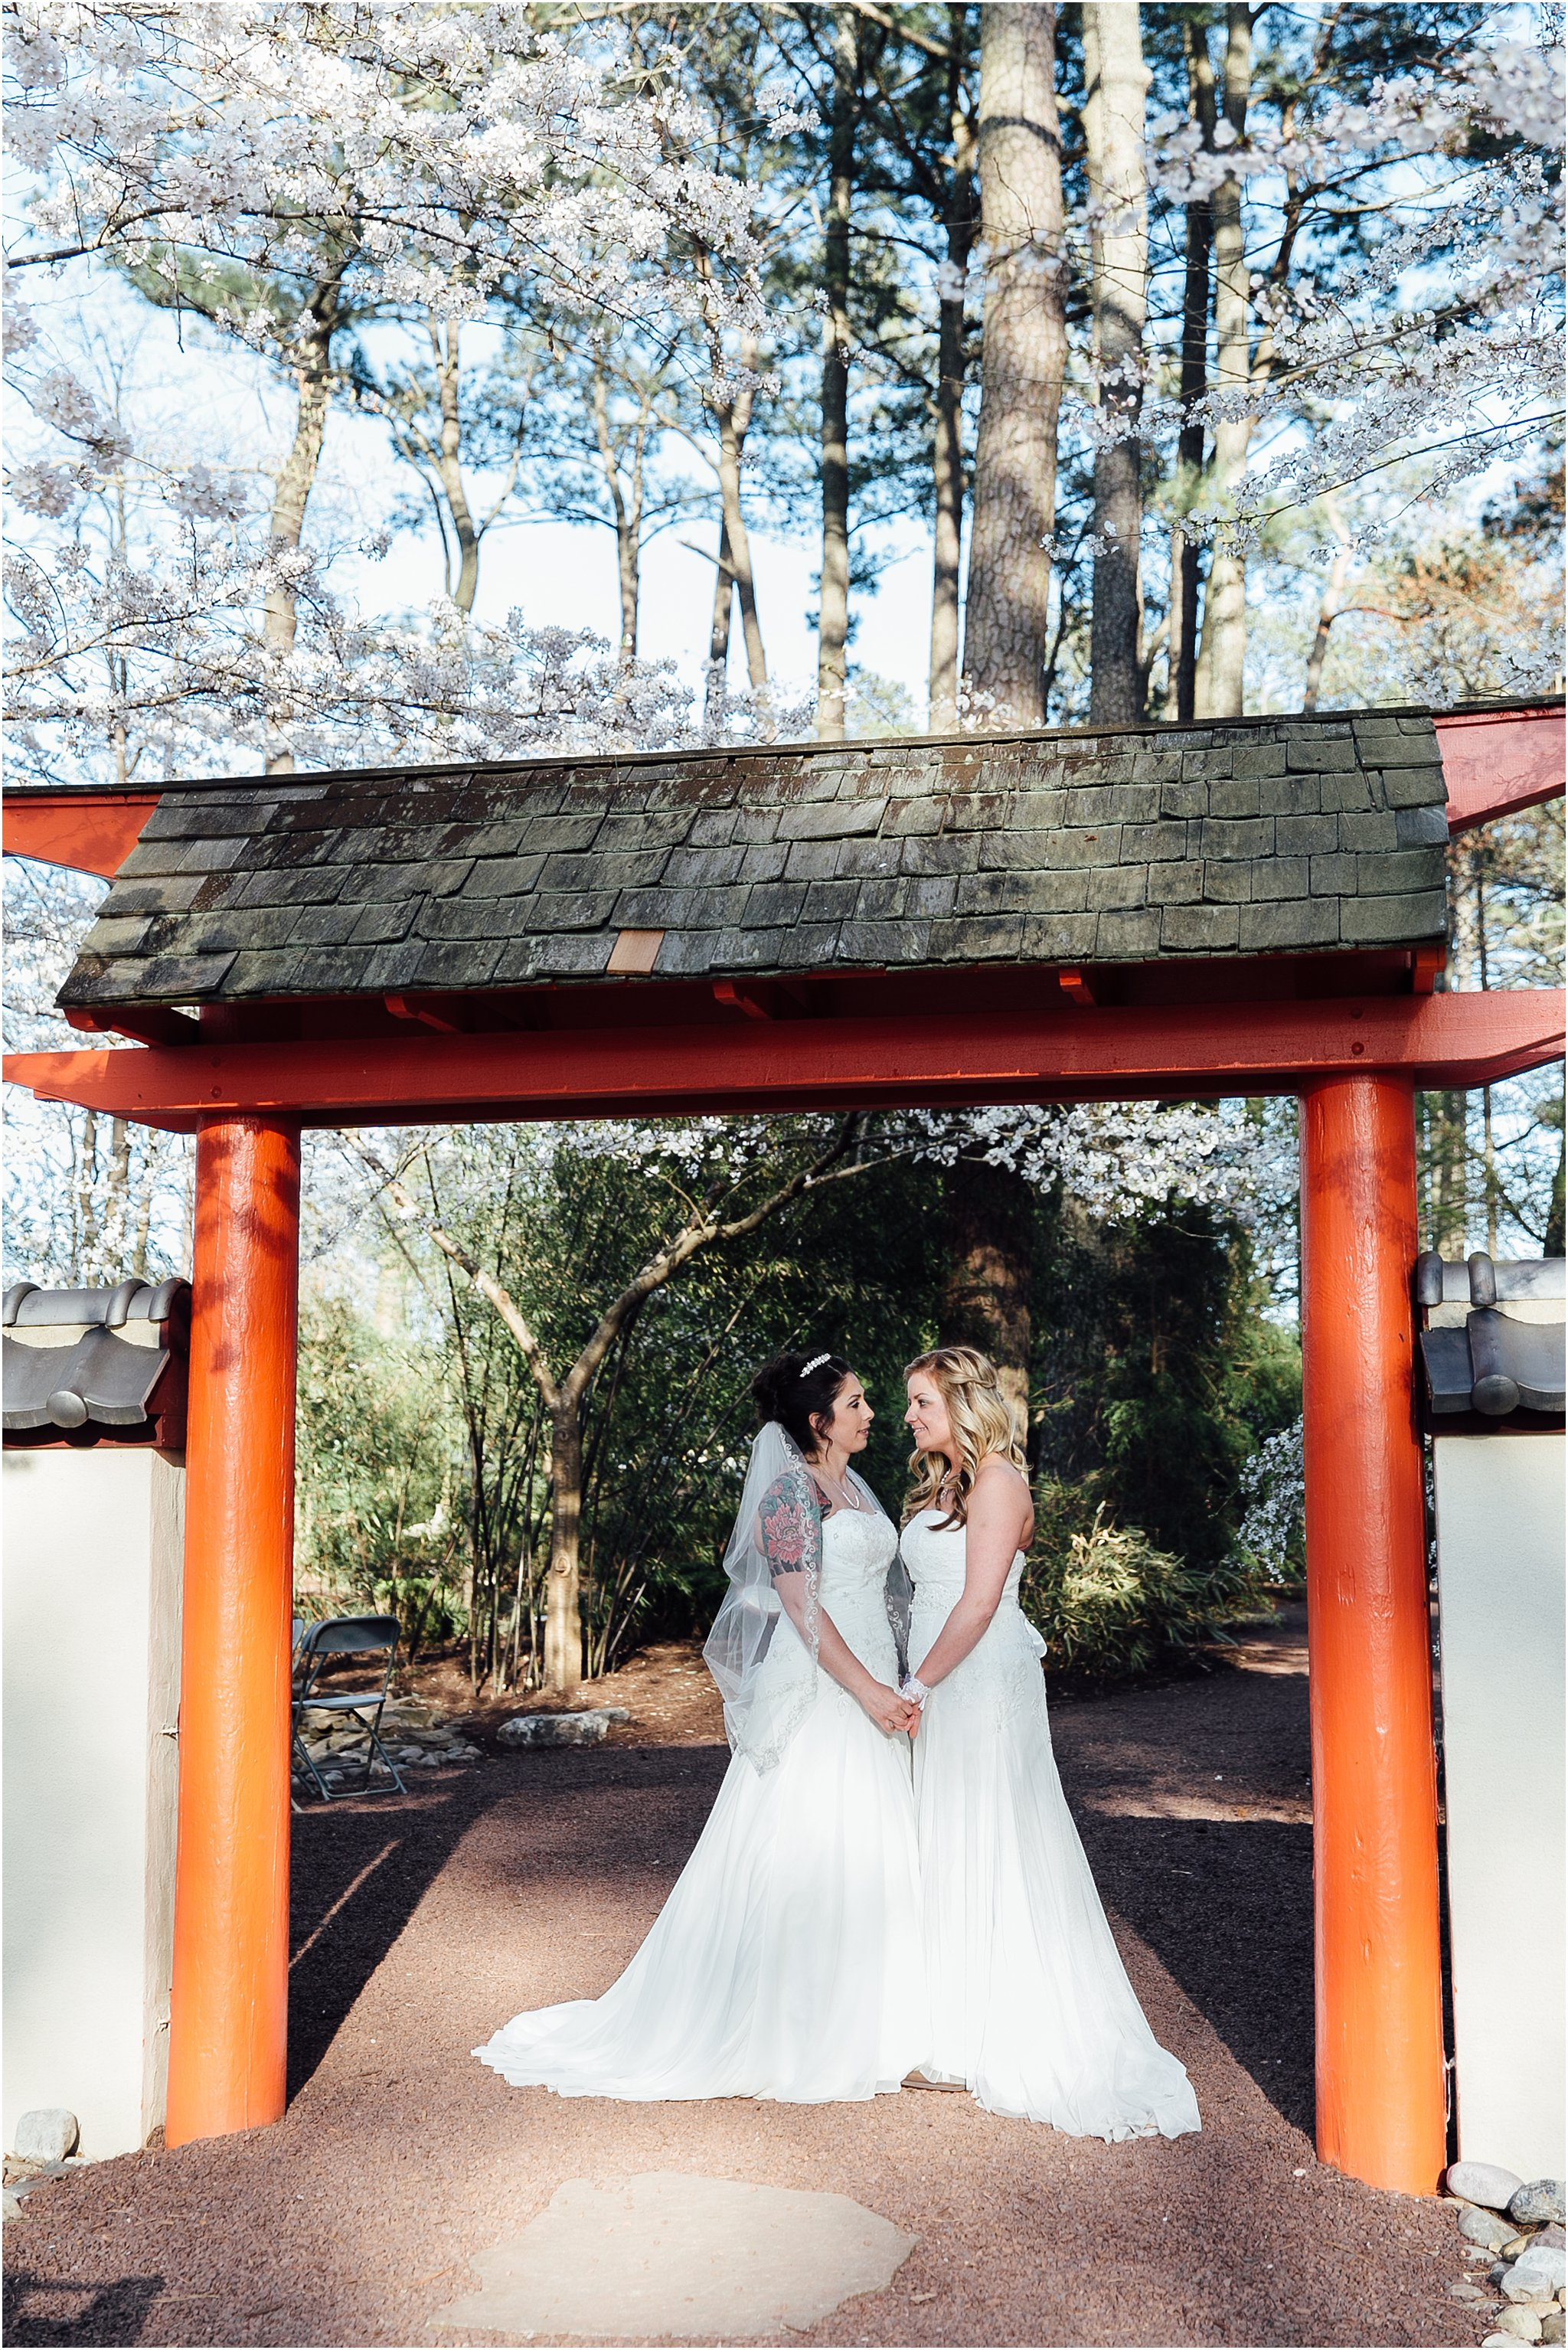 jessica_ryan_photography_redwingpark_wedding_virginia_beach_hampton_roads_1250